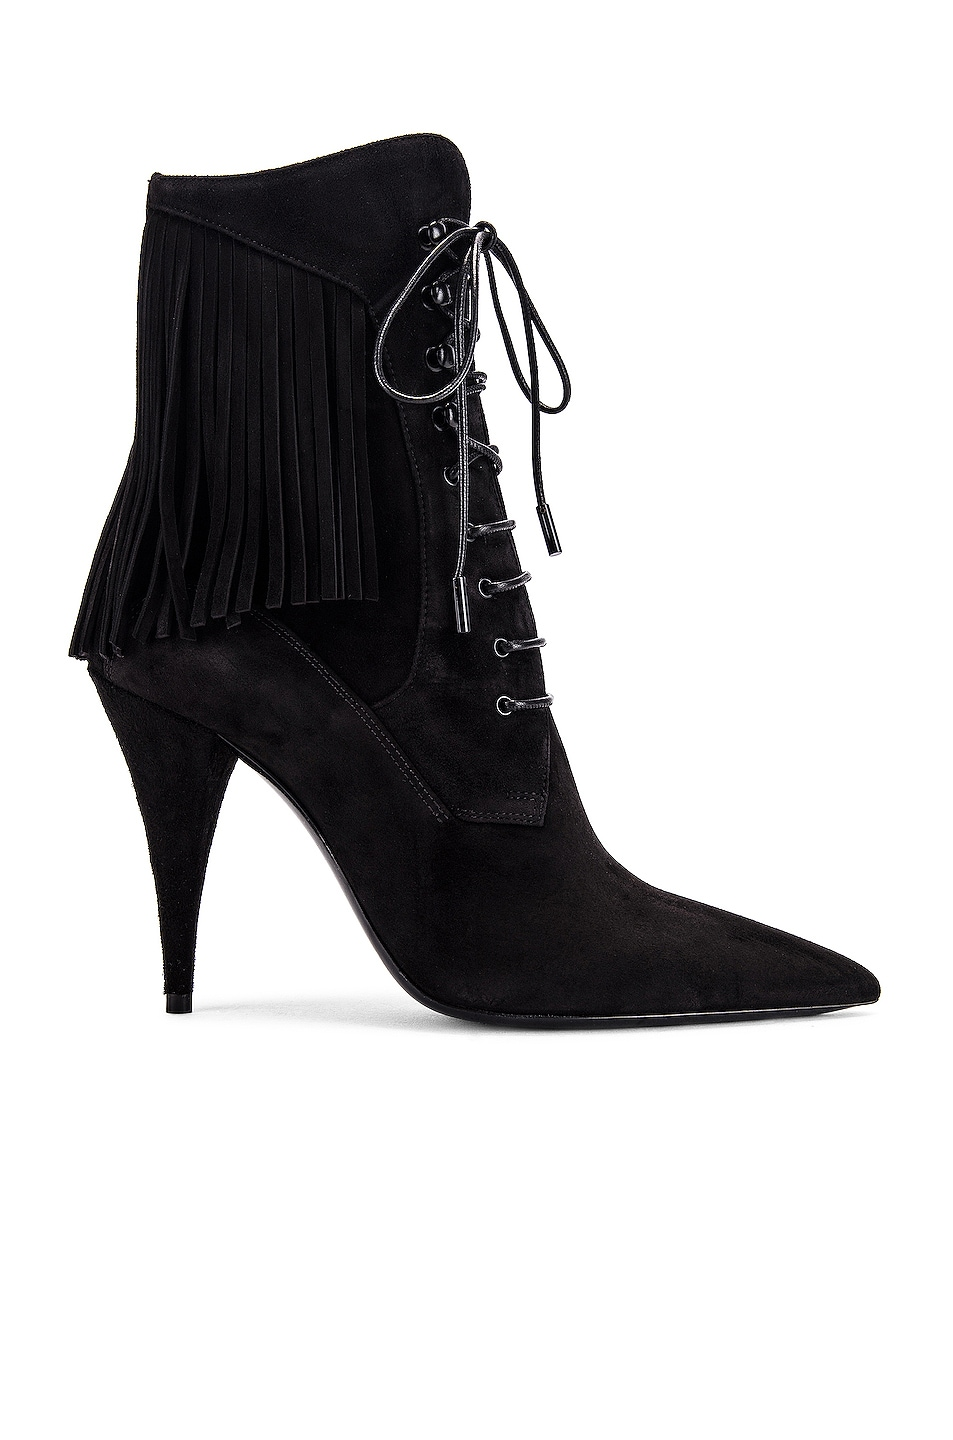 Image 1 of Saint Laurent Kiki Lace Up Fringe Ankle Booties in Black